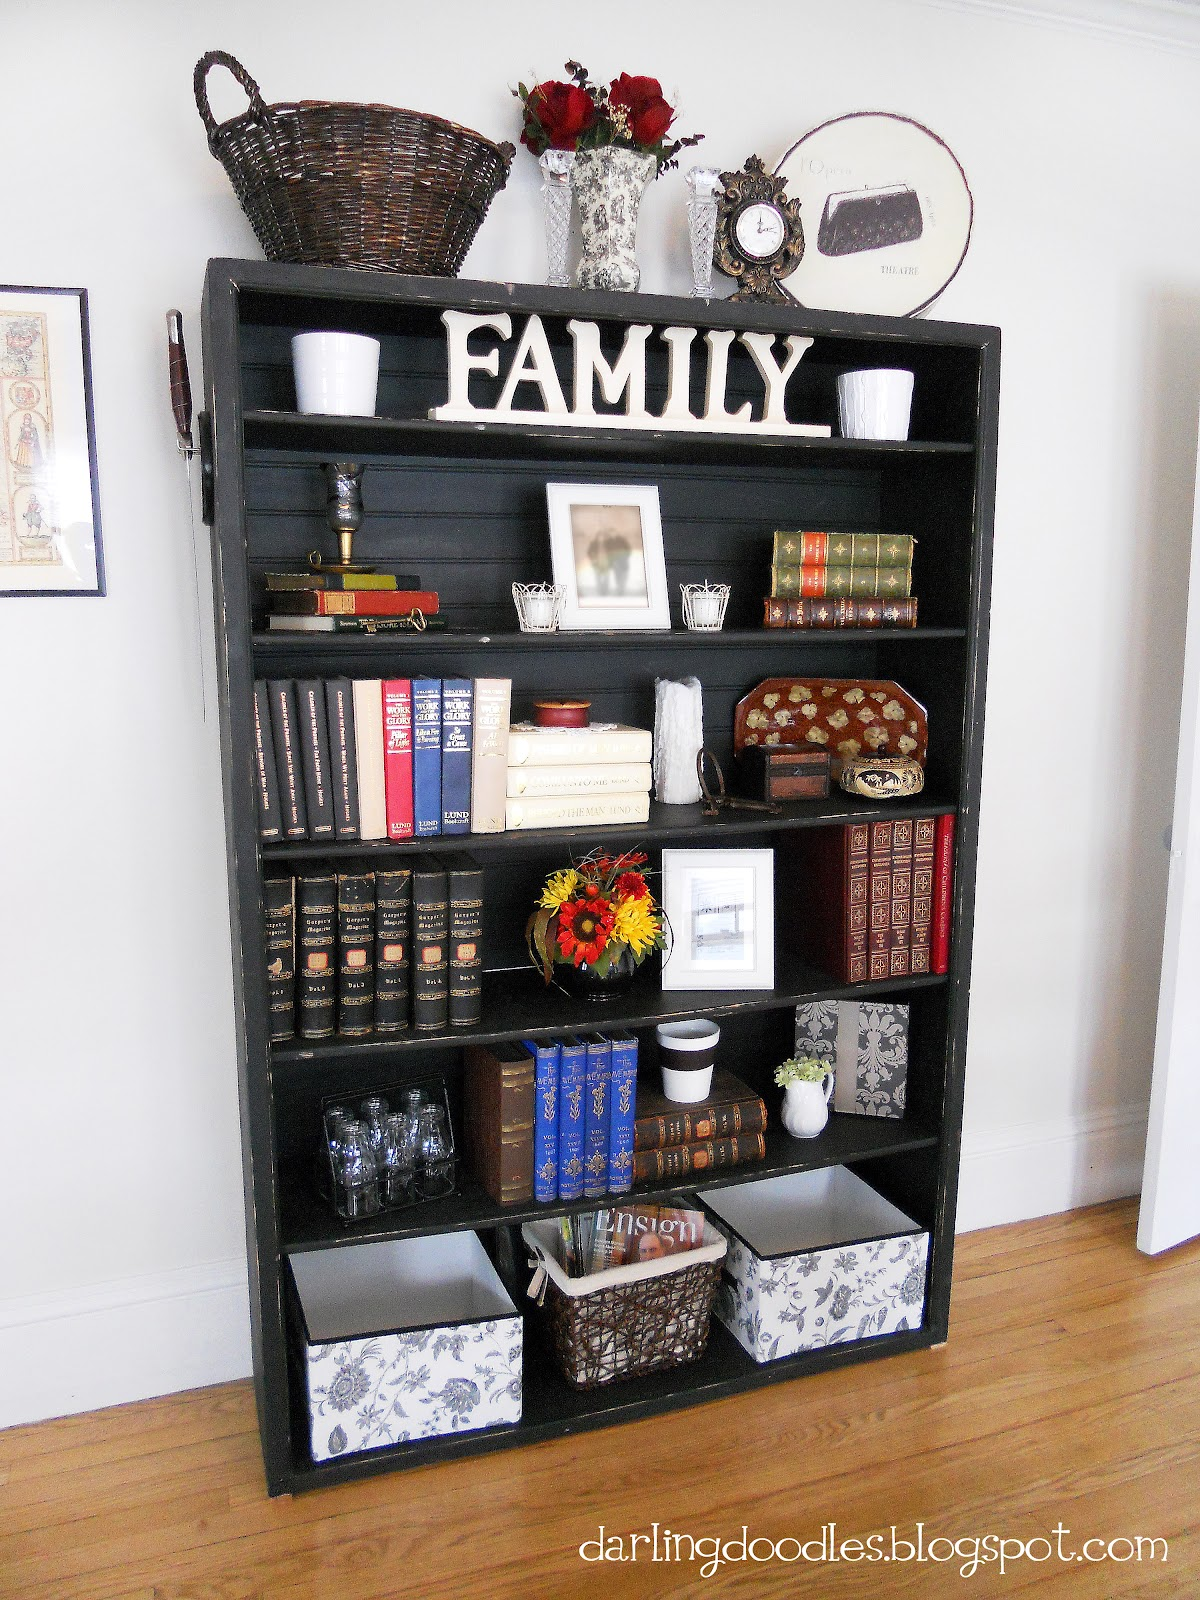 Bookshelf Decorating Tips - Native Home Garden Design